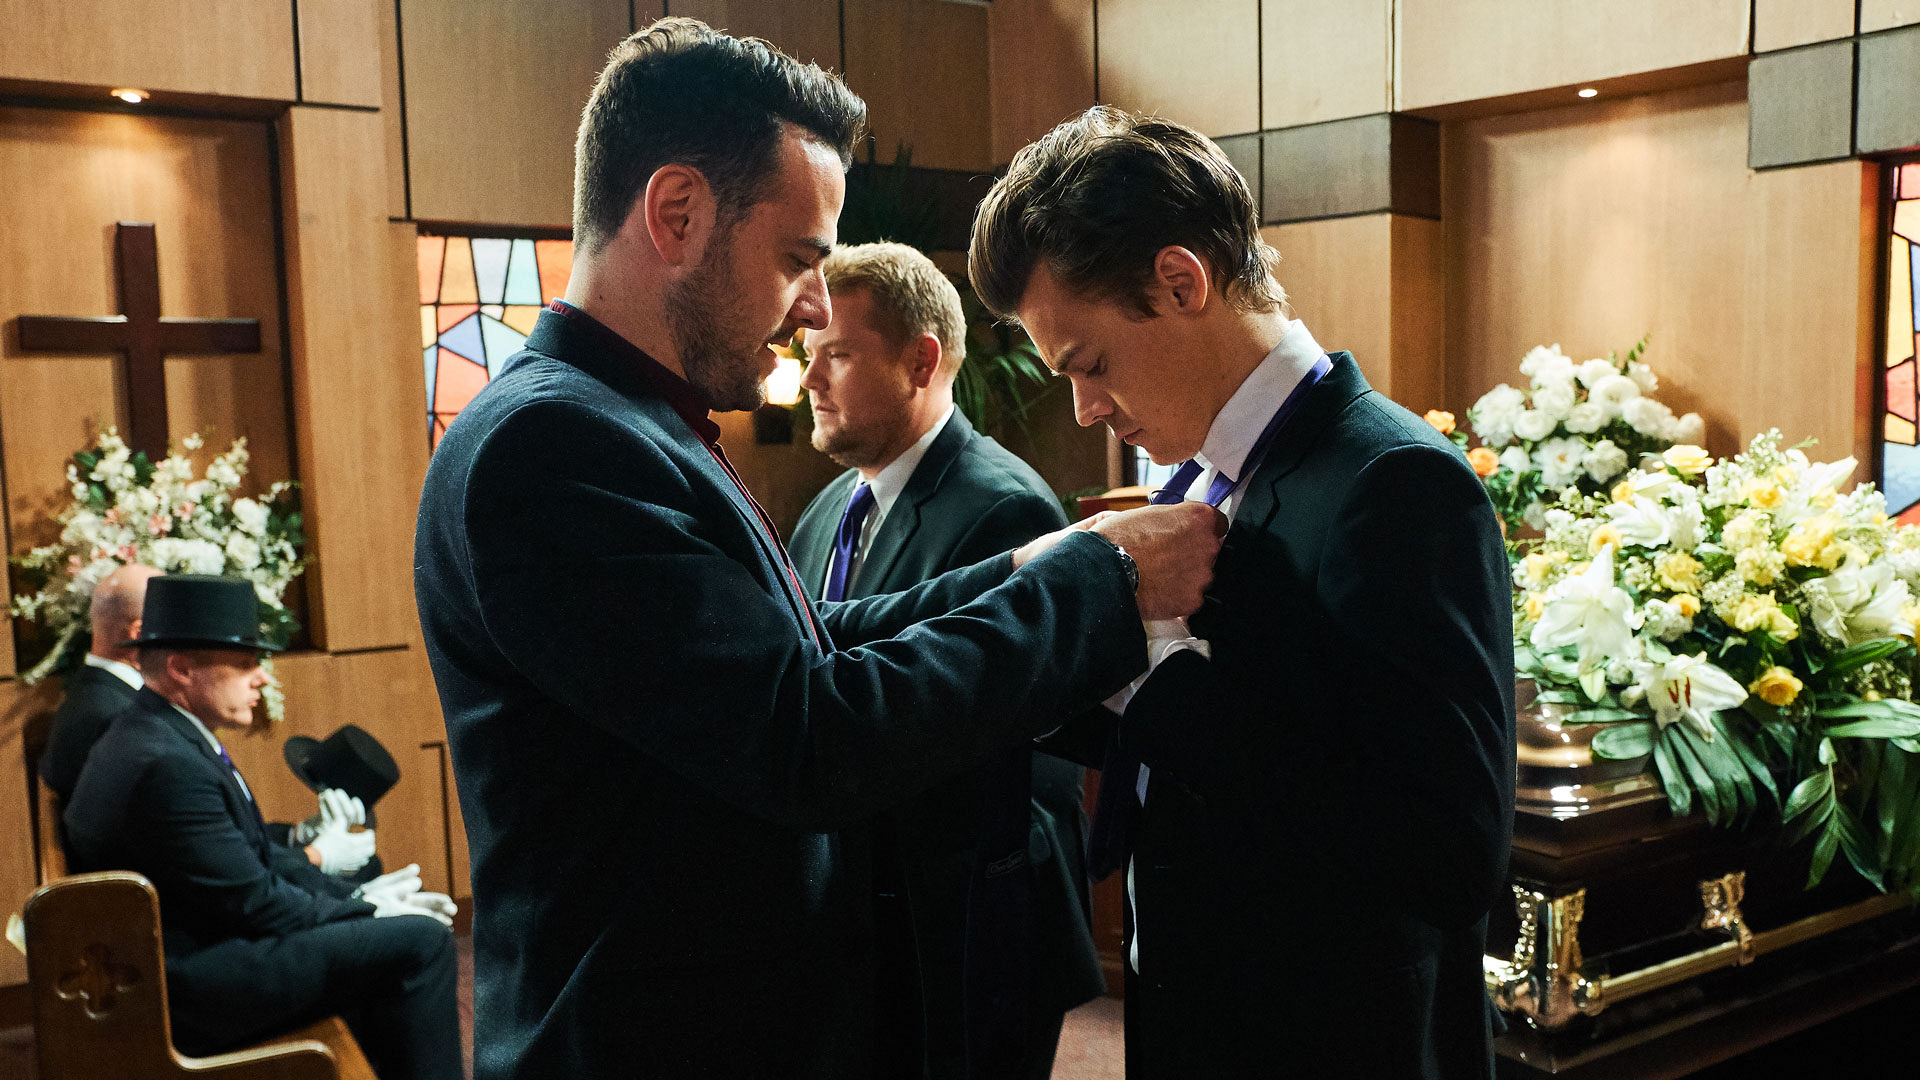 Straightening of the tie by Executive Producer Ben Winston